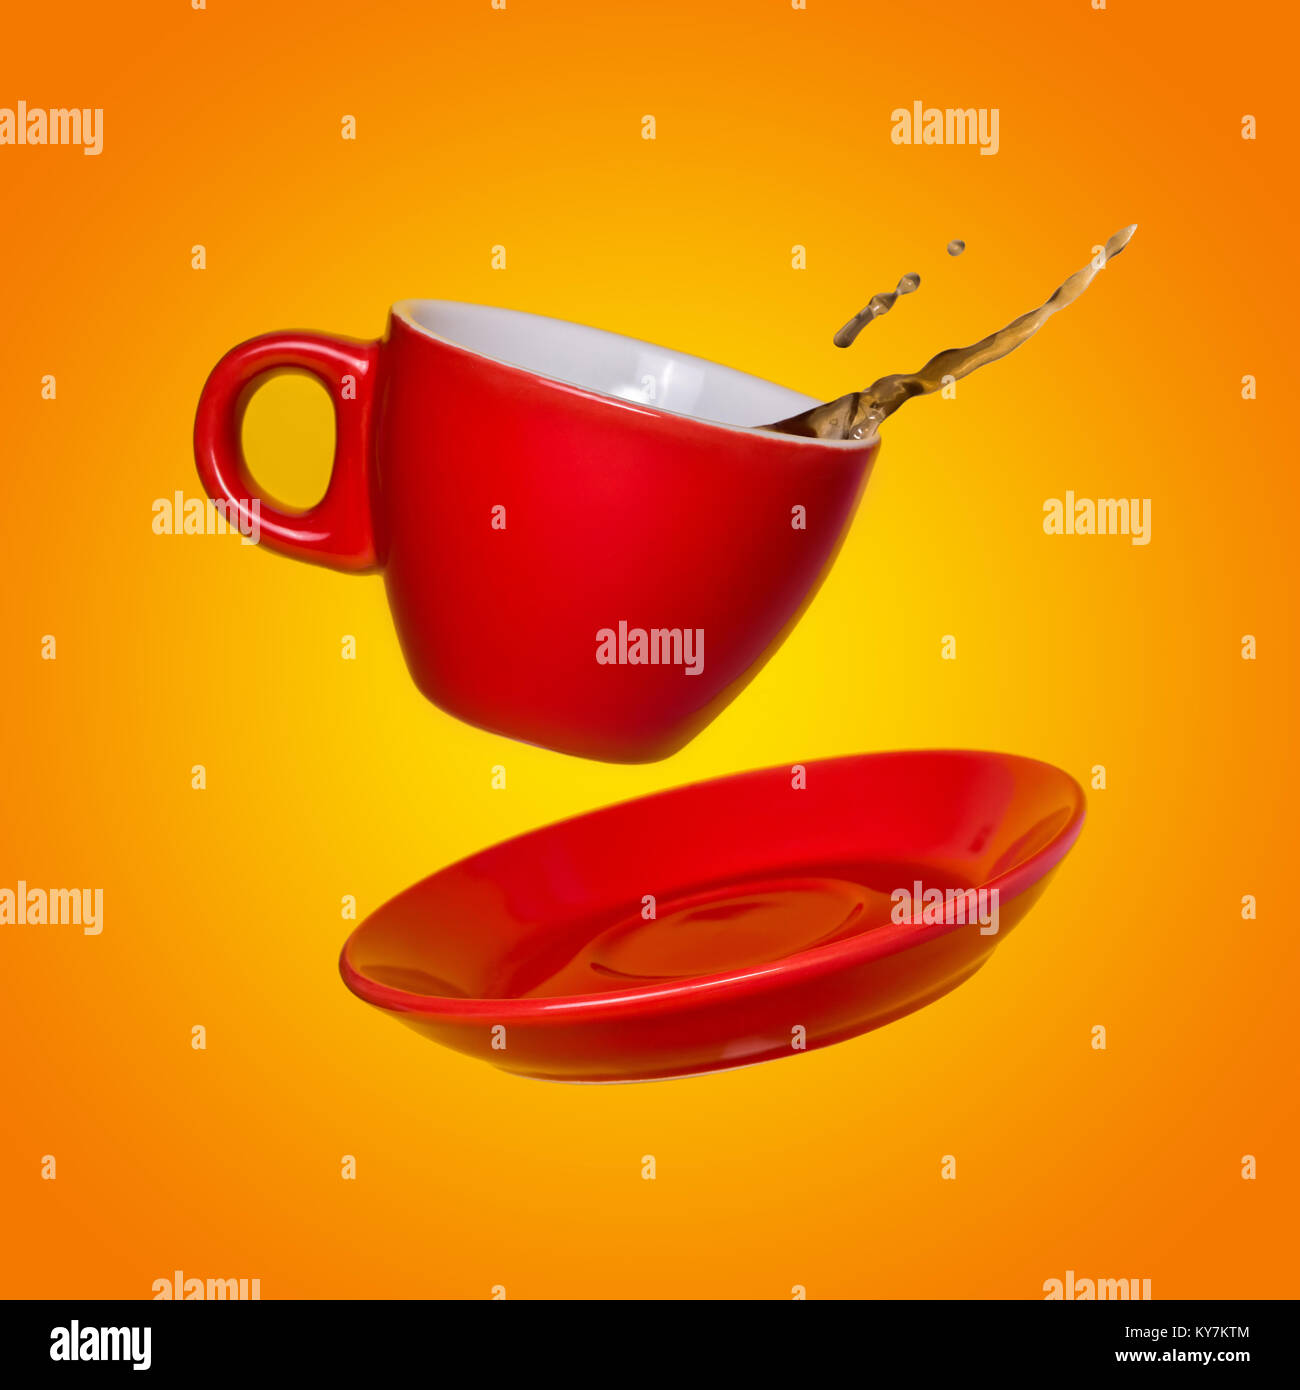 Creative Surreal Design With A Red Coffee Cup And Saucer On A Yellow Stock Photo Alamy